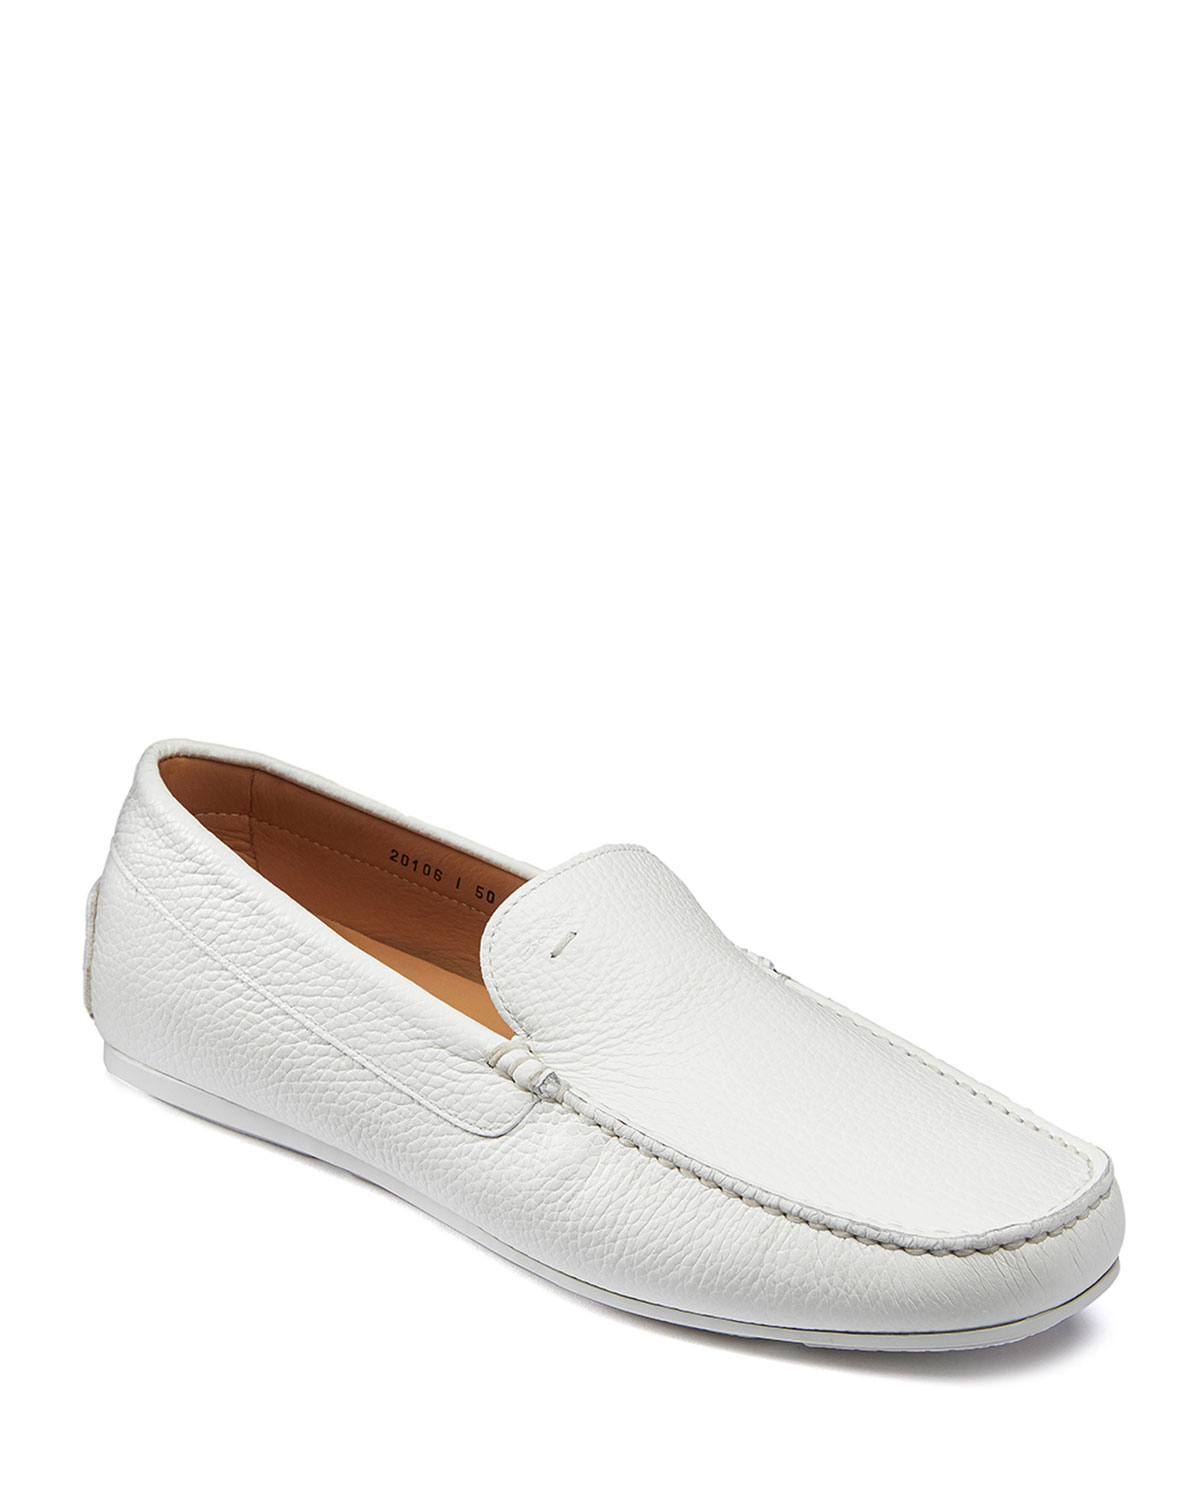 Santoni Loafers MEN'S WELLINGTON PEBBLED LEATHER LOAFERS, WHITE